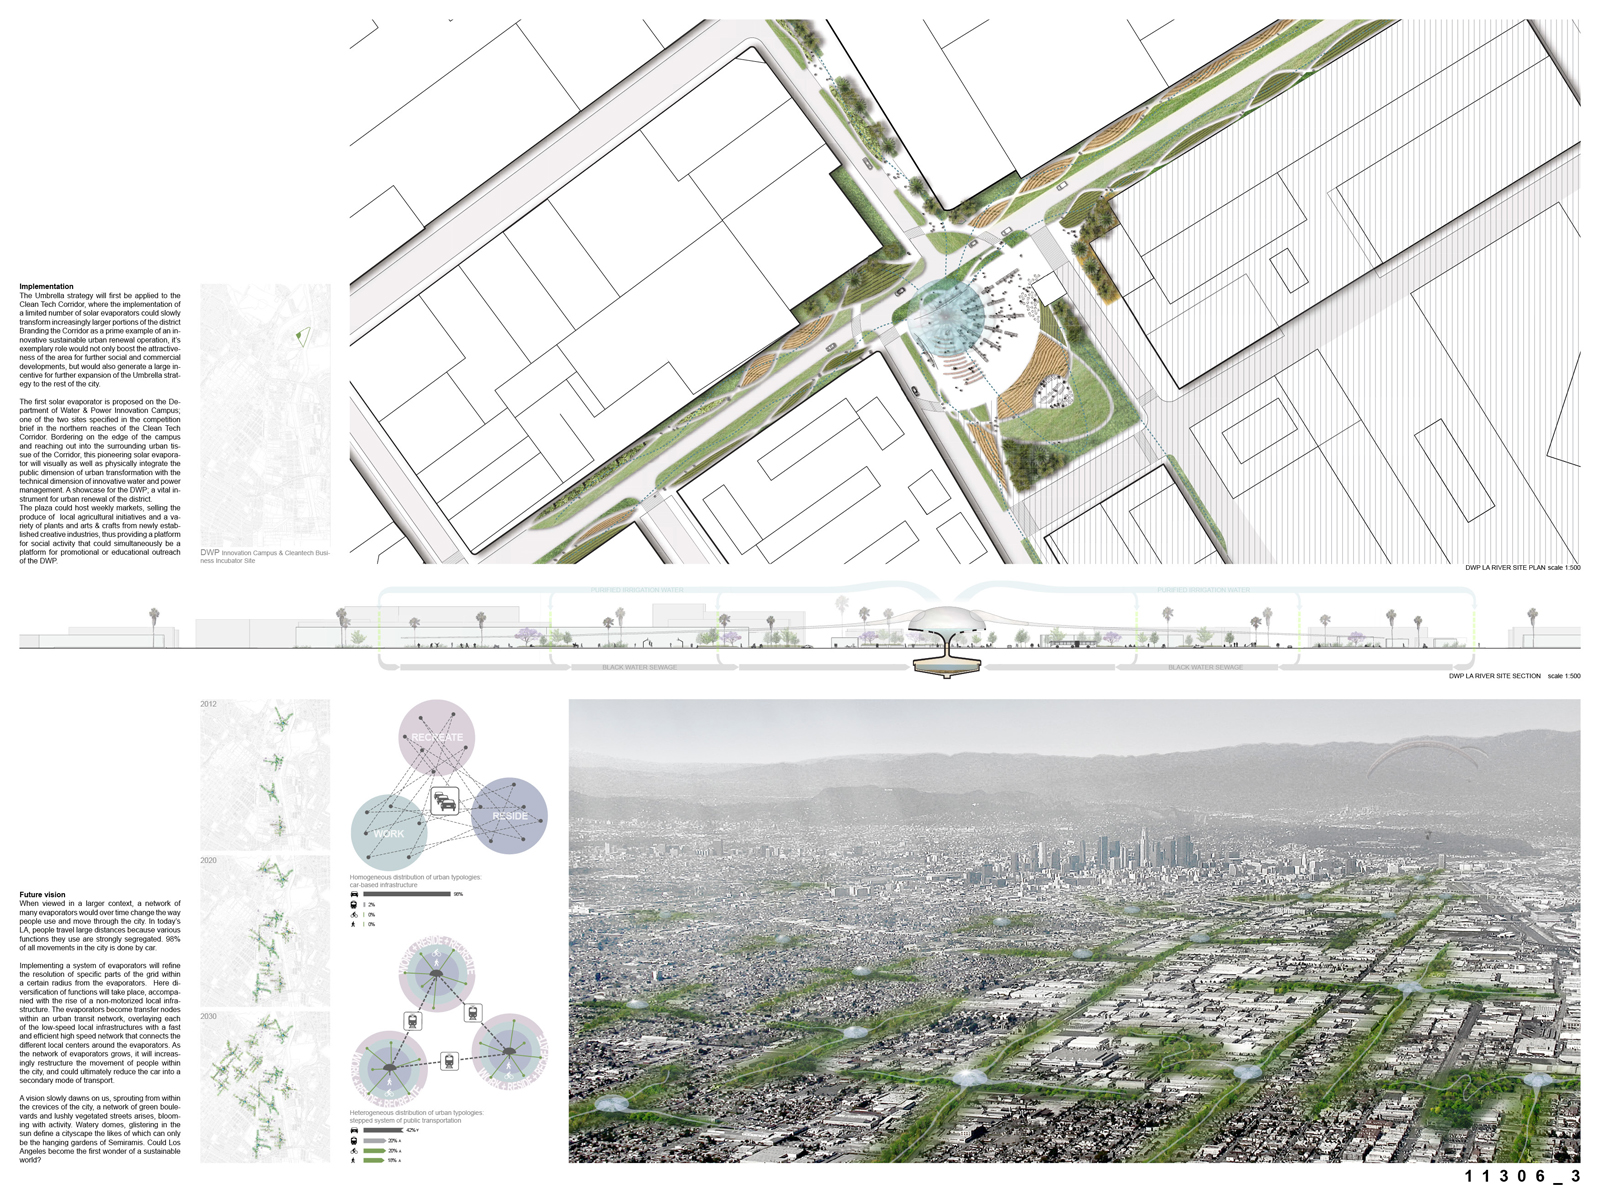 Green webs spreading out from the evaporators generate incentives for new, sustainable developments. The central urban plazas become focal points for a gradual process of transformation that will affect the way people will see, use, and experience their c